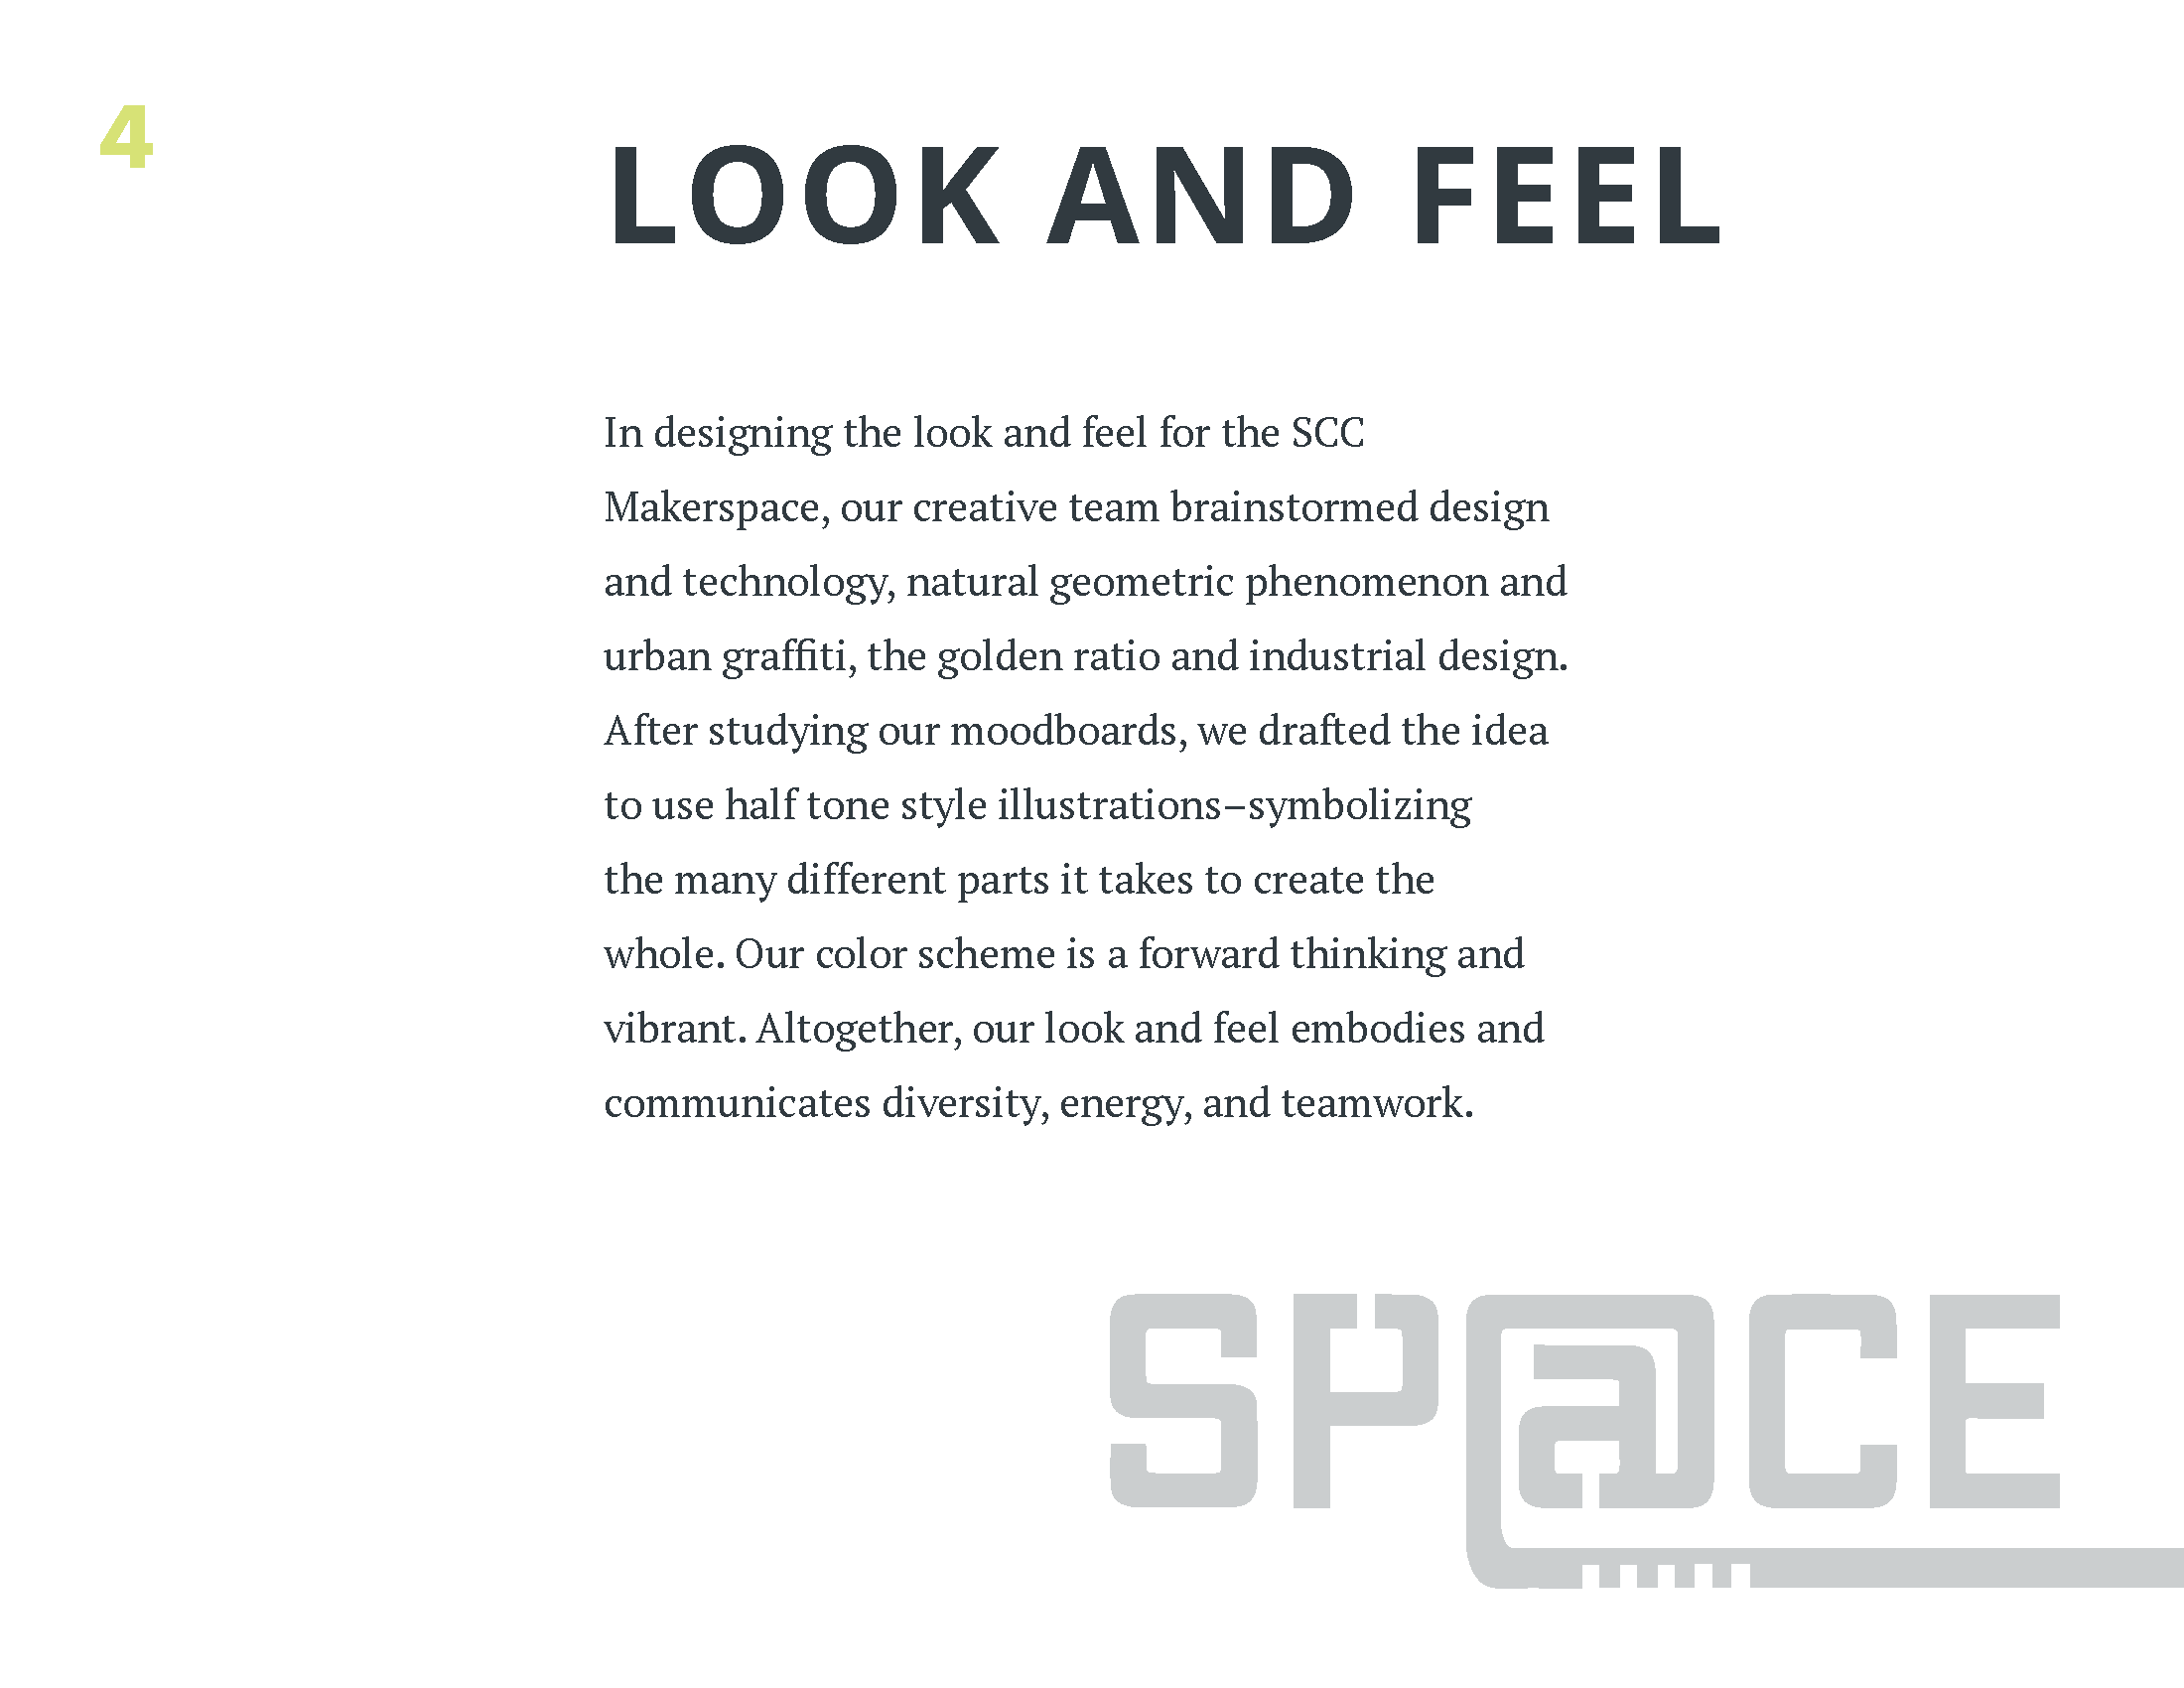 Makerspace_styleguide_Page_04.png